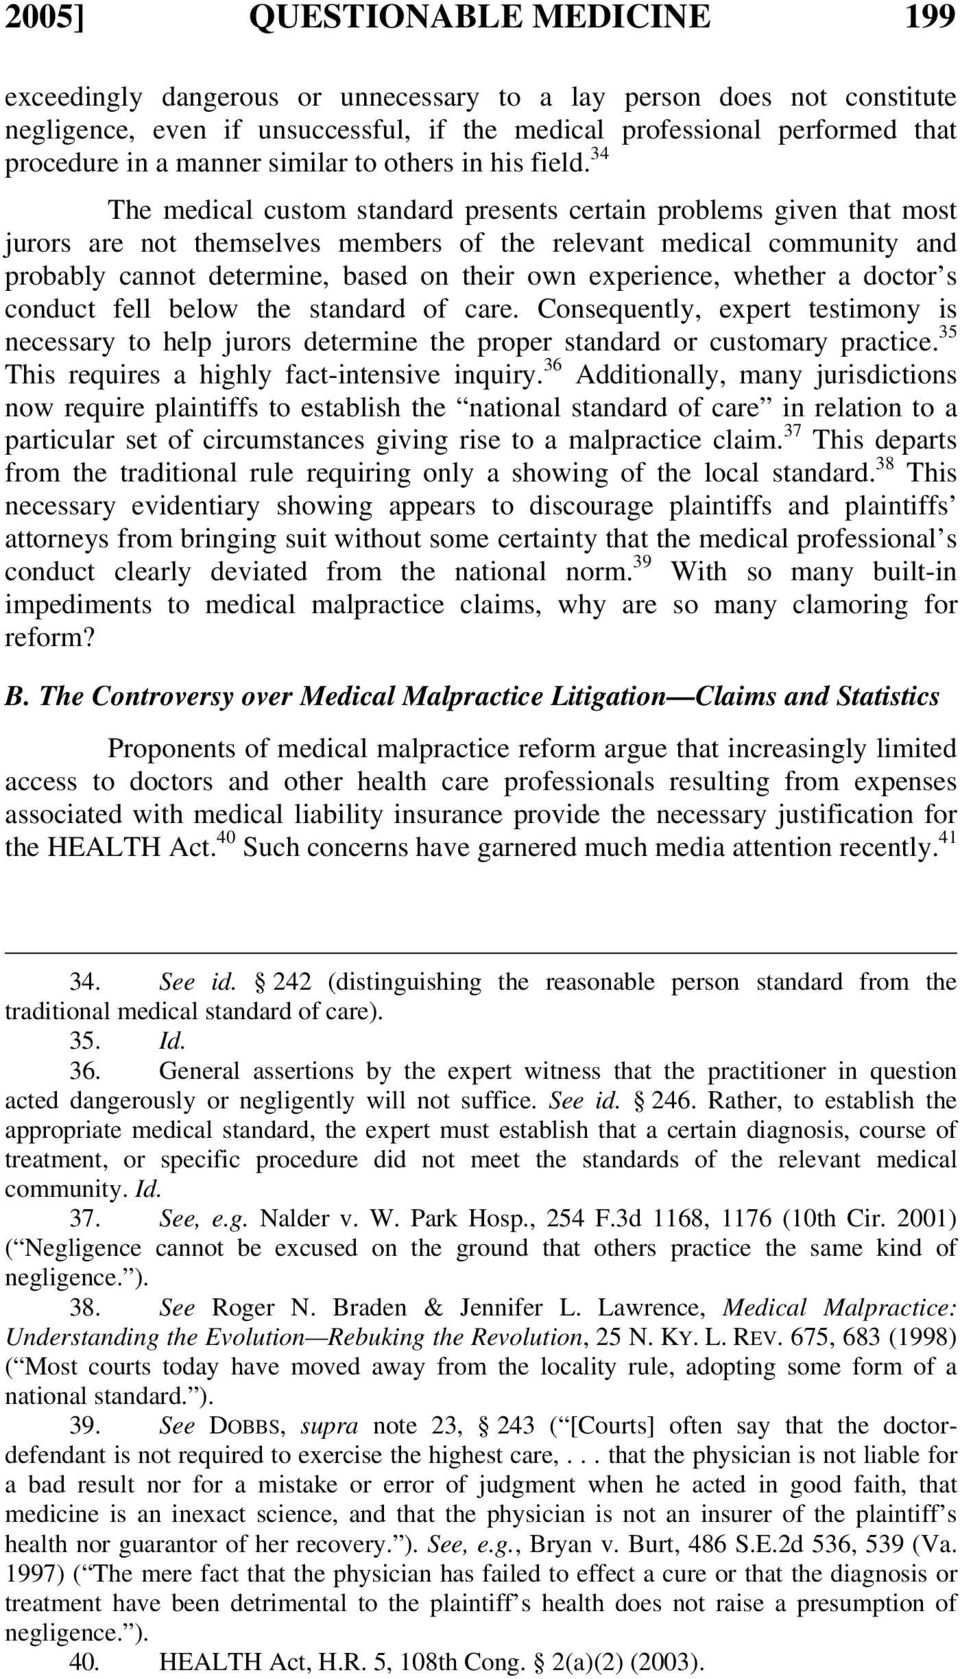 34 The medical custom standard presents certain problems given that most jurors are not themselves members of the relevant medical community and probably cannot determine, based on their own